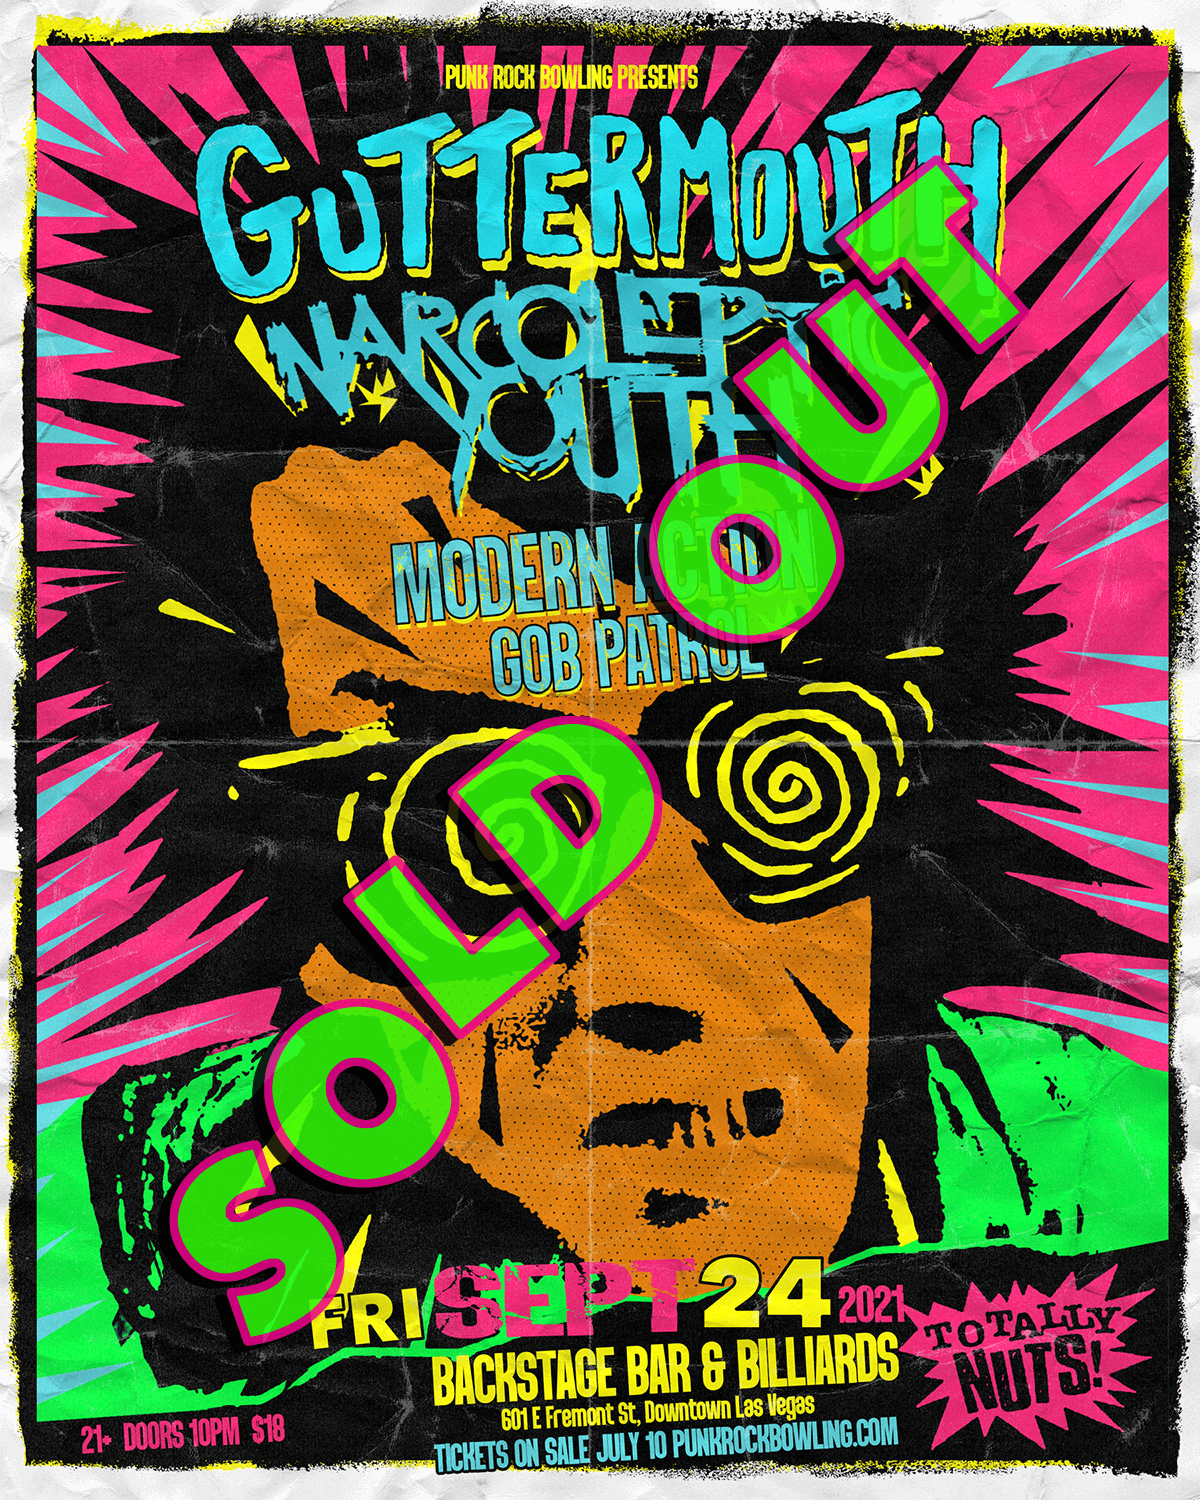 Guttermouth, Narcoleptic Youth, Modern Action, Gob Patrol PUNK ROCK BOWLING 2021 AFTER PARTY LAS VEGAS SOLD OUT